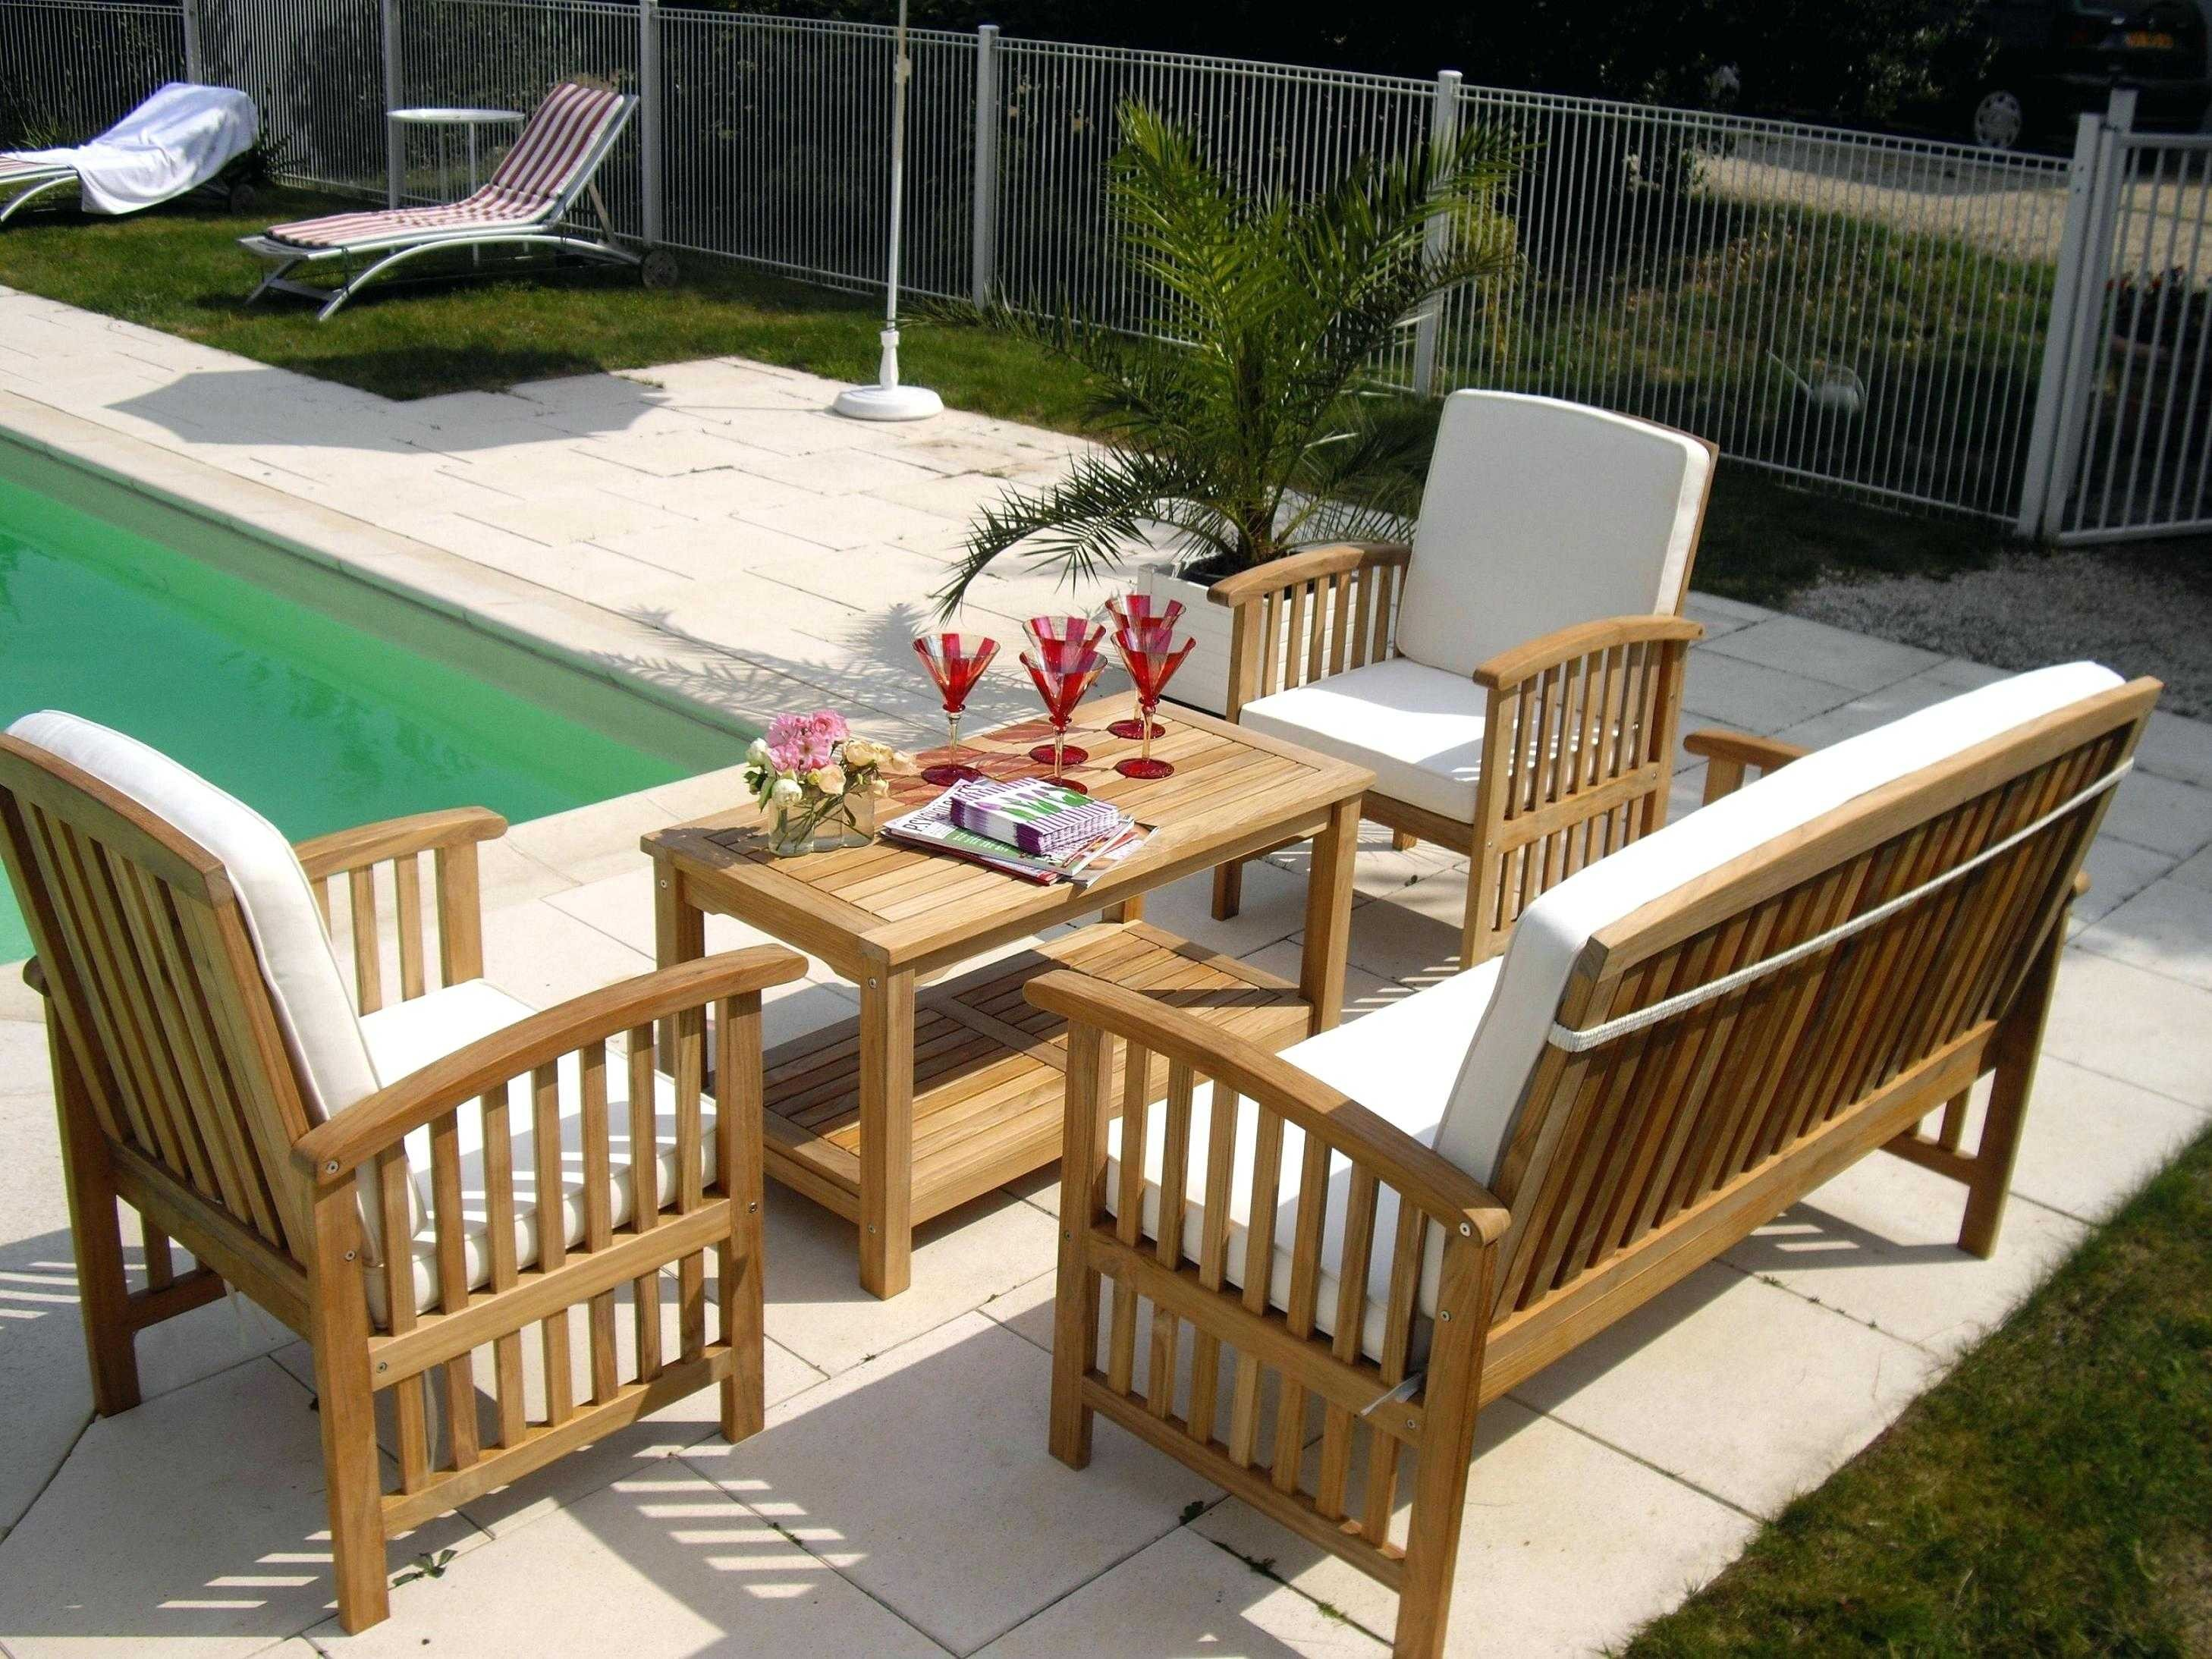 mobilier de jardin carrefour home jardin piscine et cabane. Black Bedroom Furniture Sets. Home Design Ideas